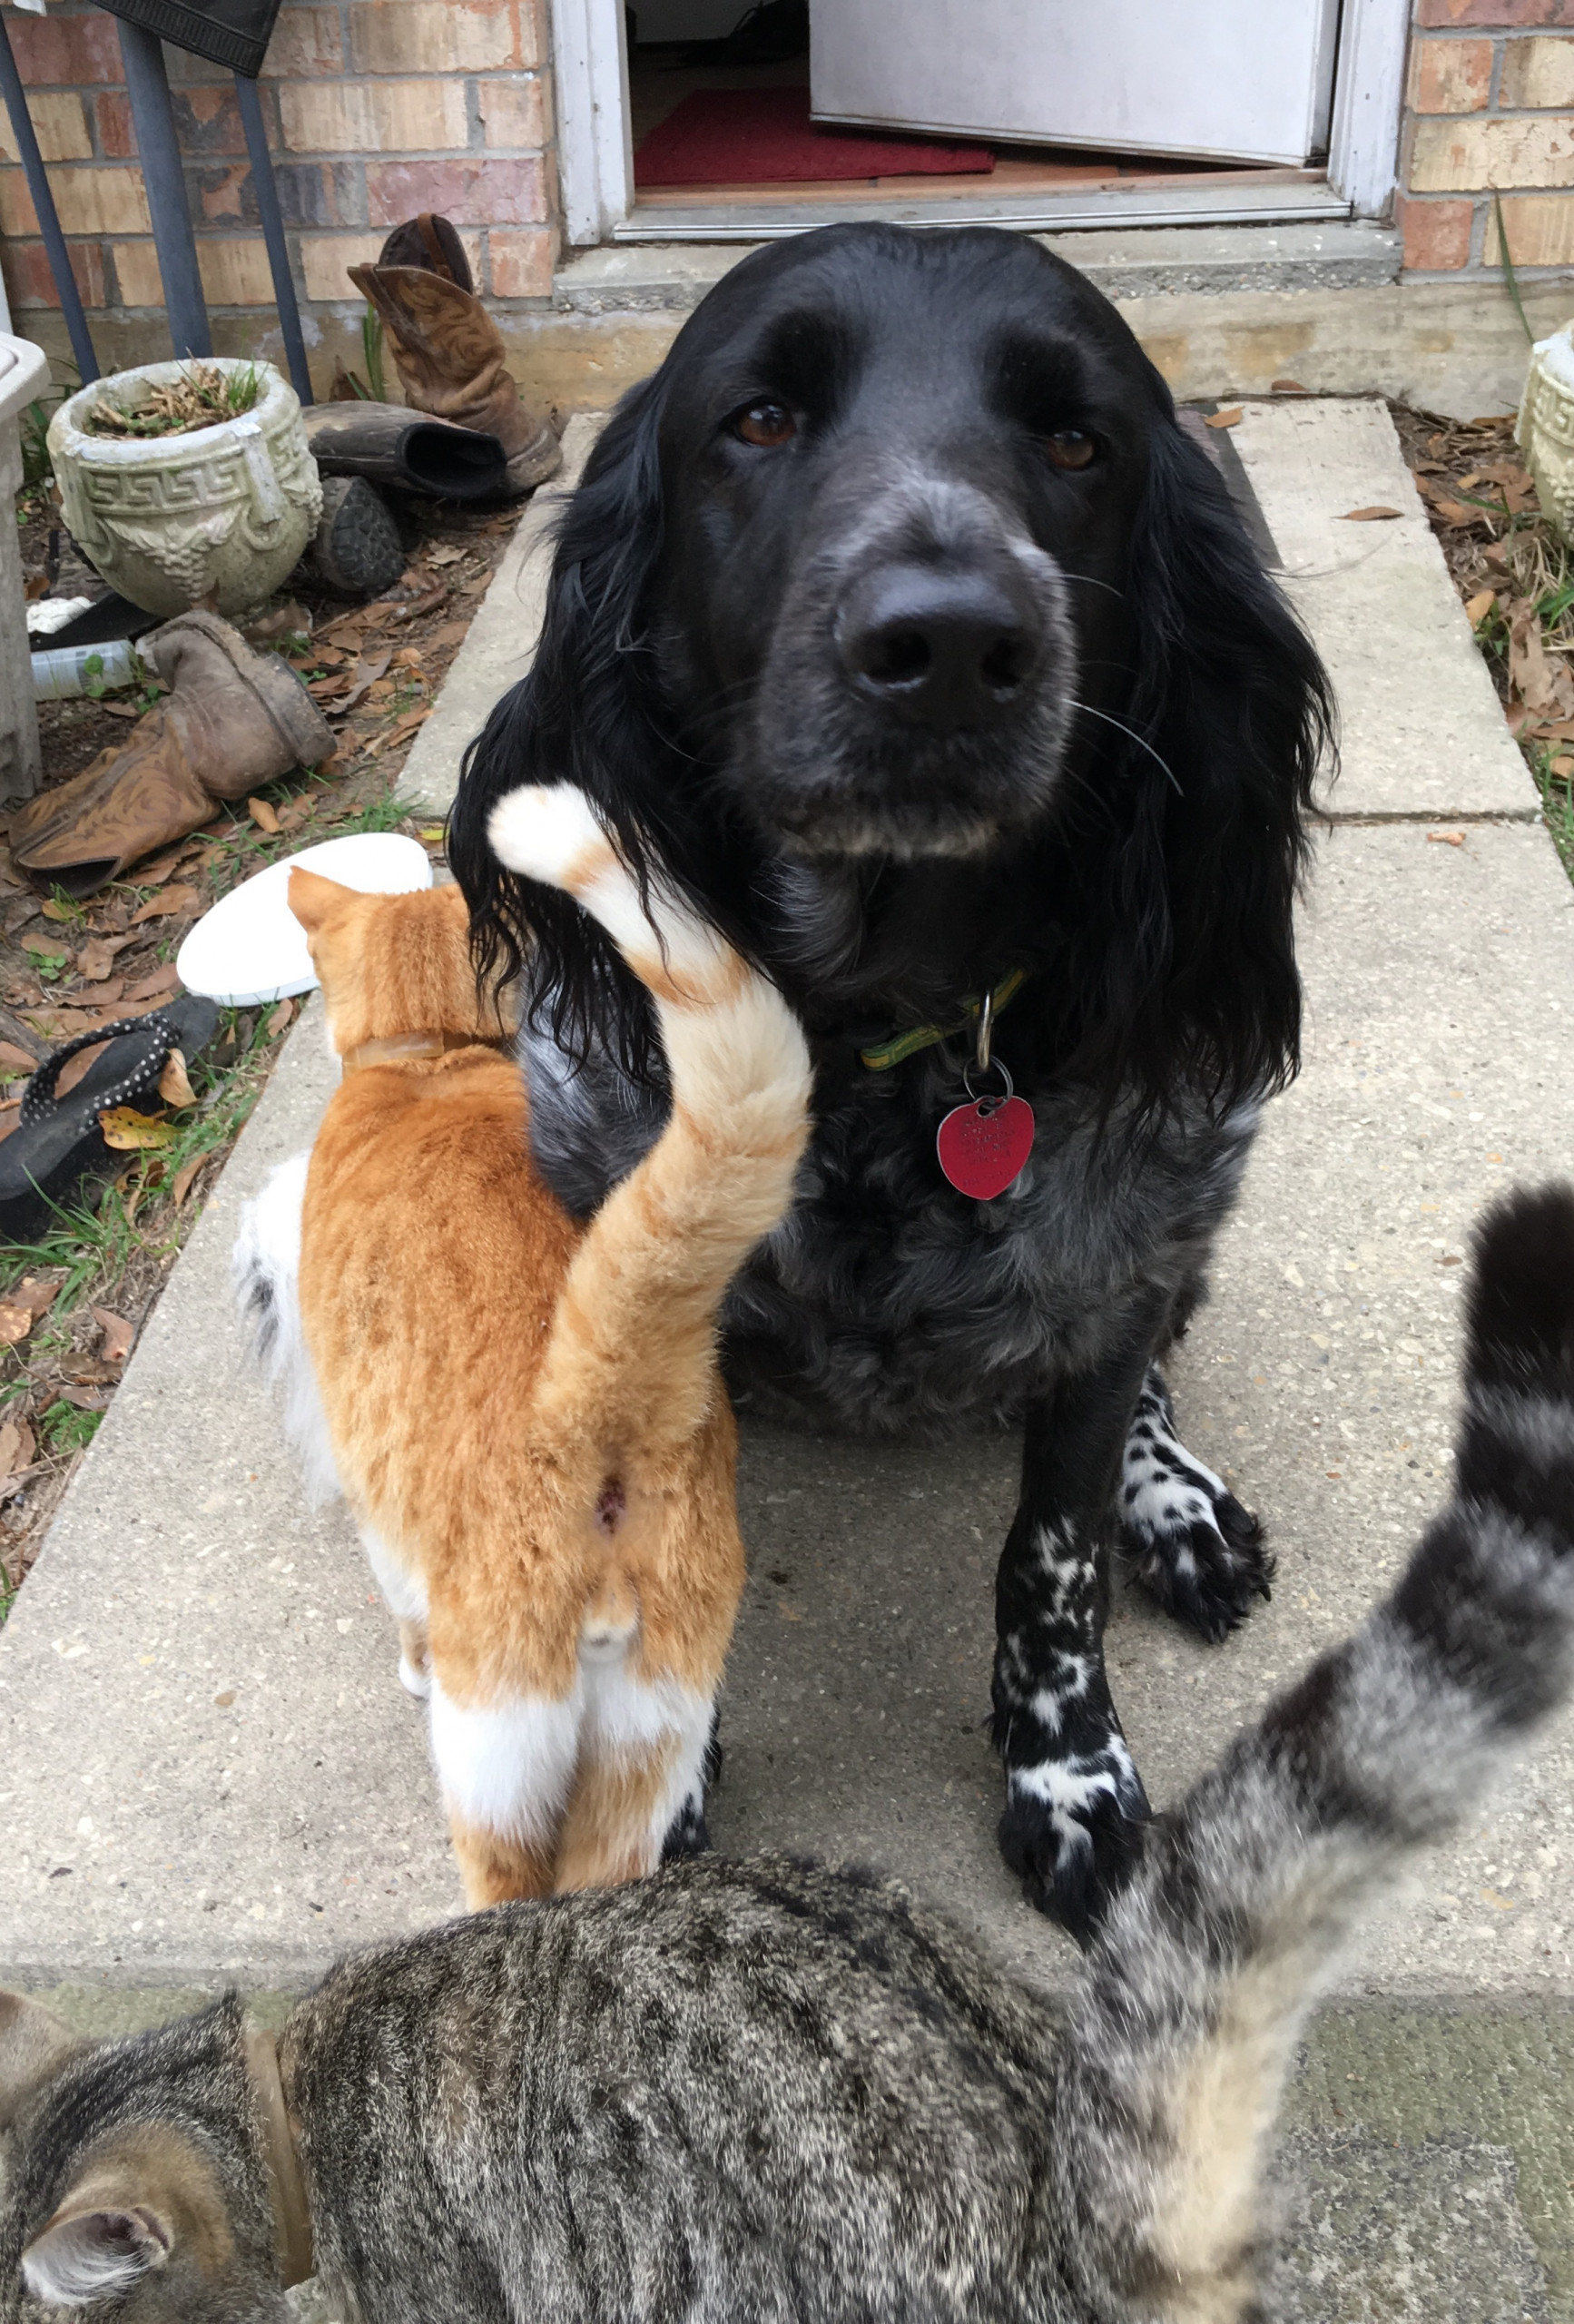 animal communication dogs and cats talk too